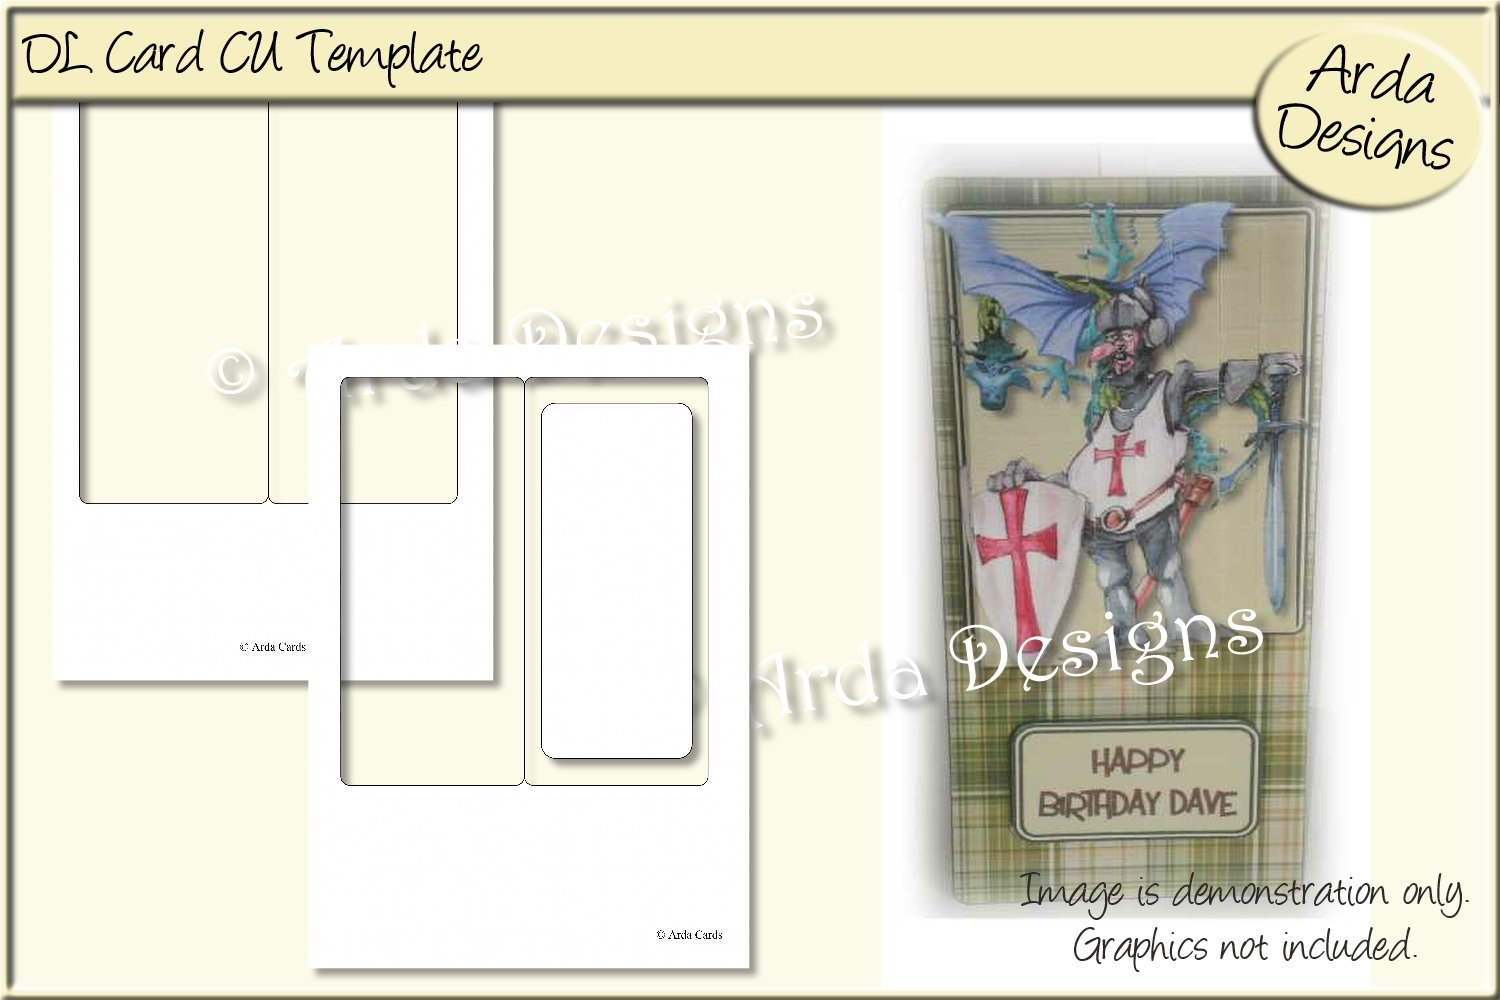 Dl Card Cu Template Graphicarda Designs  Creative Fabrica Pertaining To Dl Card Template